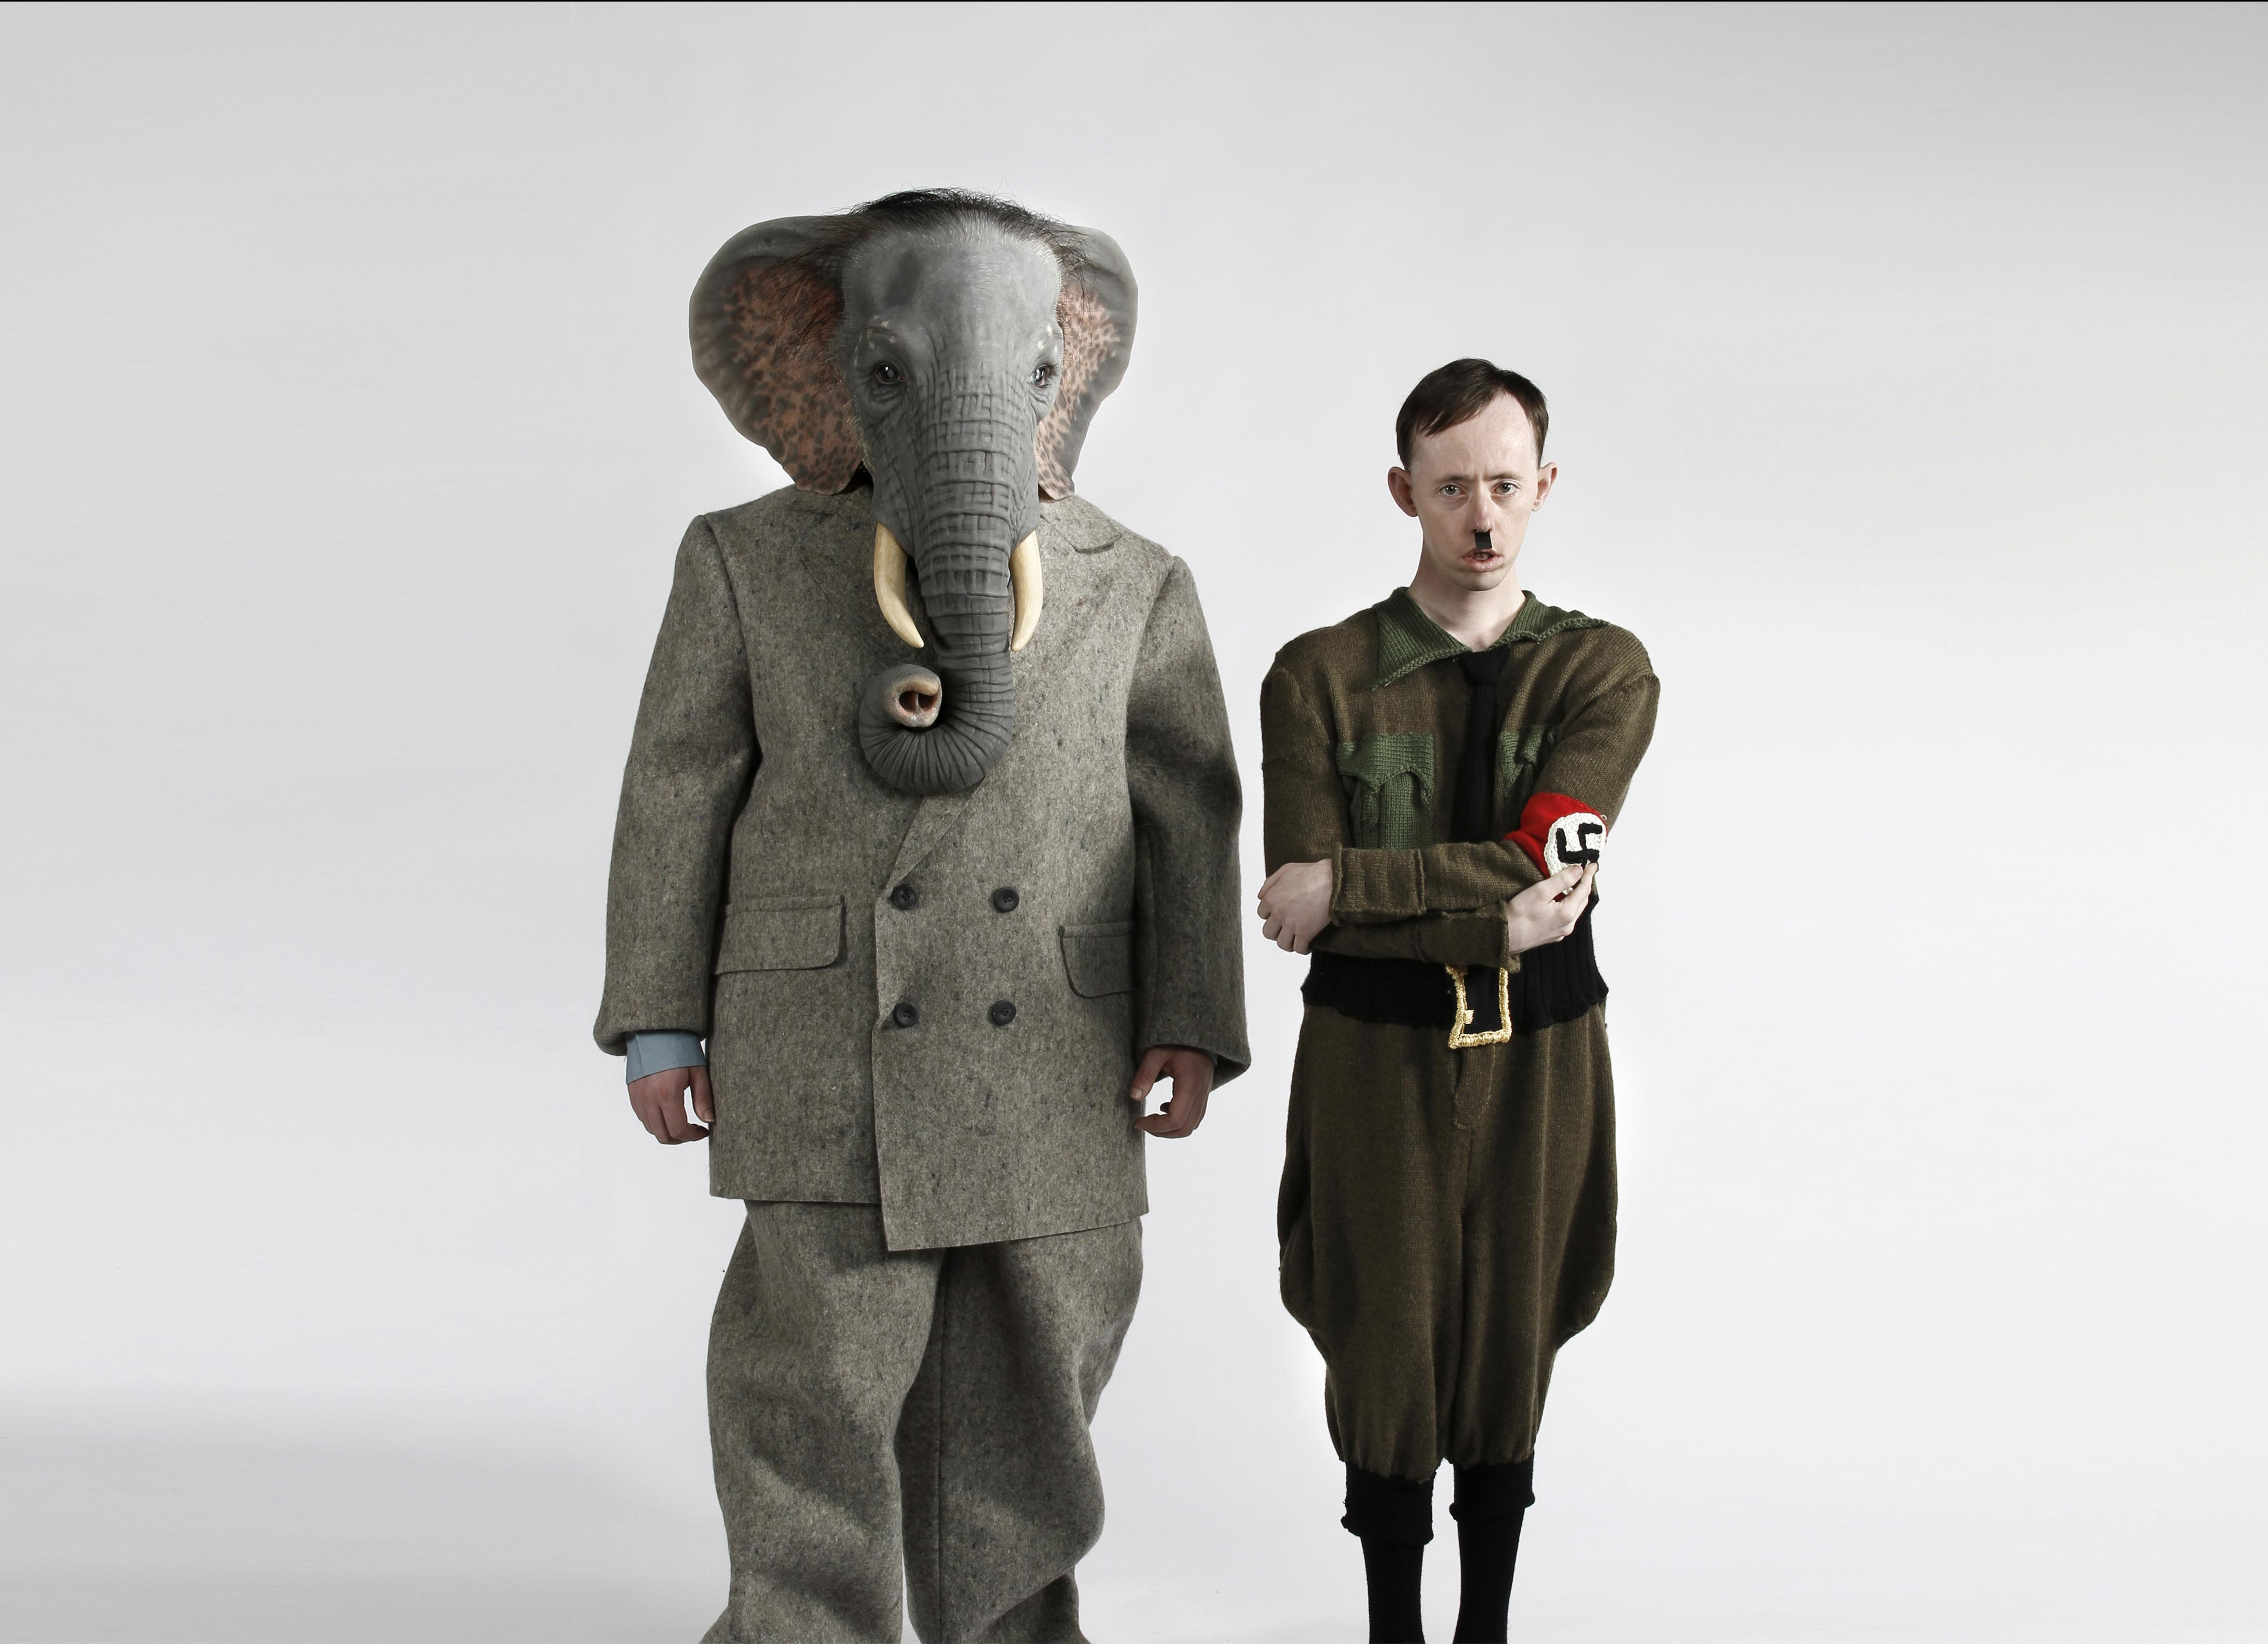 A person with a head like an elephant wears a gray business suit and stands beside a person in a nazi uniform who resembles Adolf Hitler.